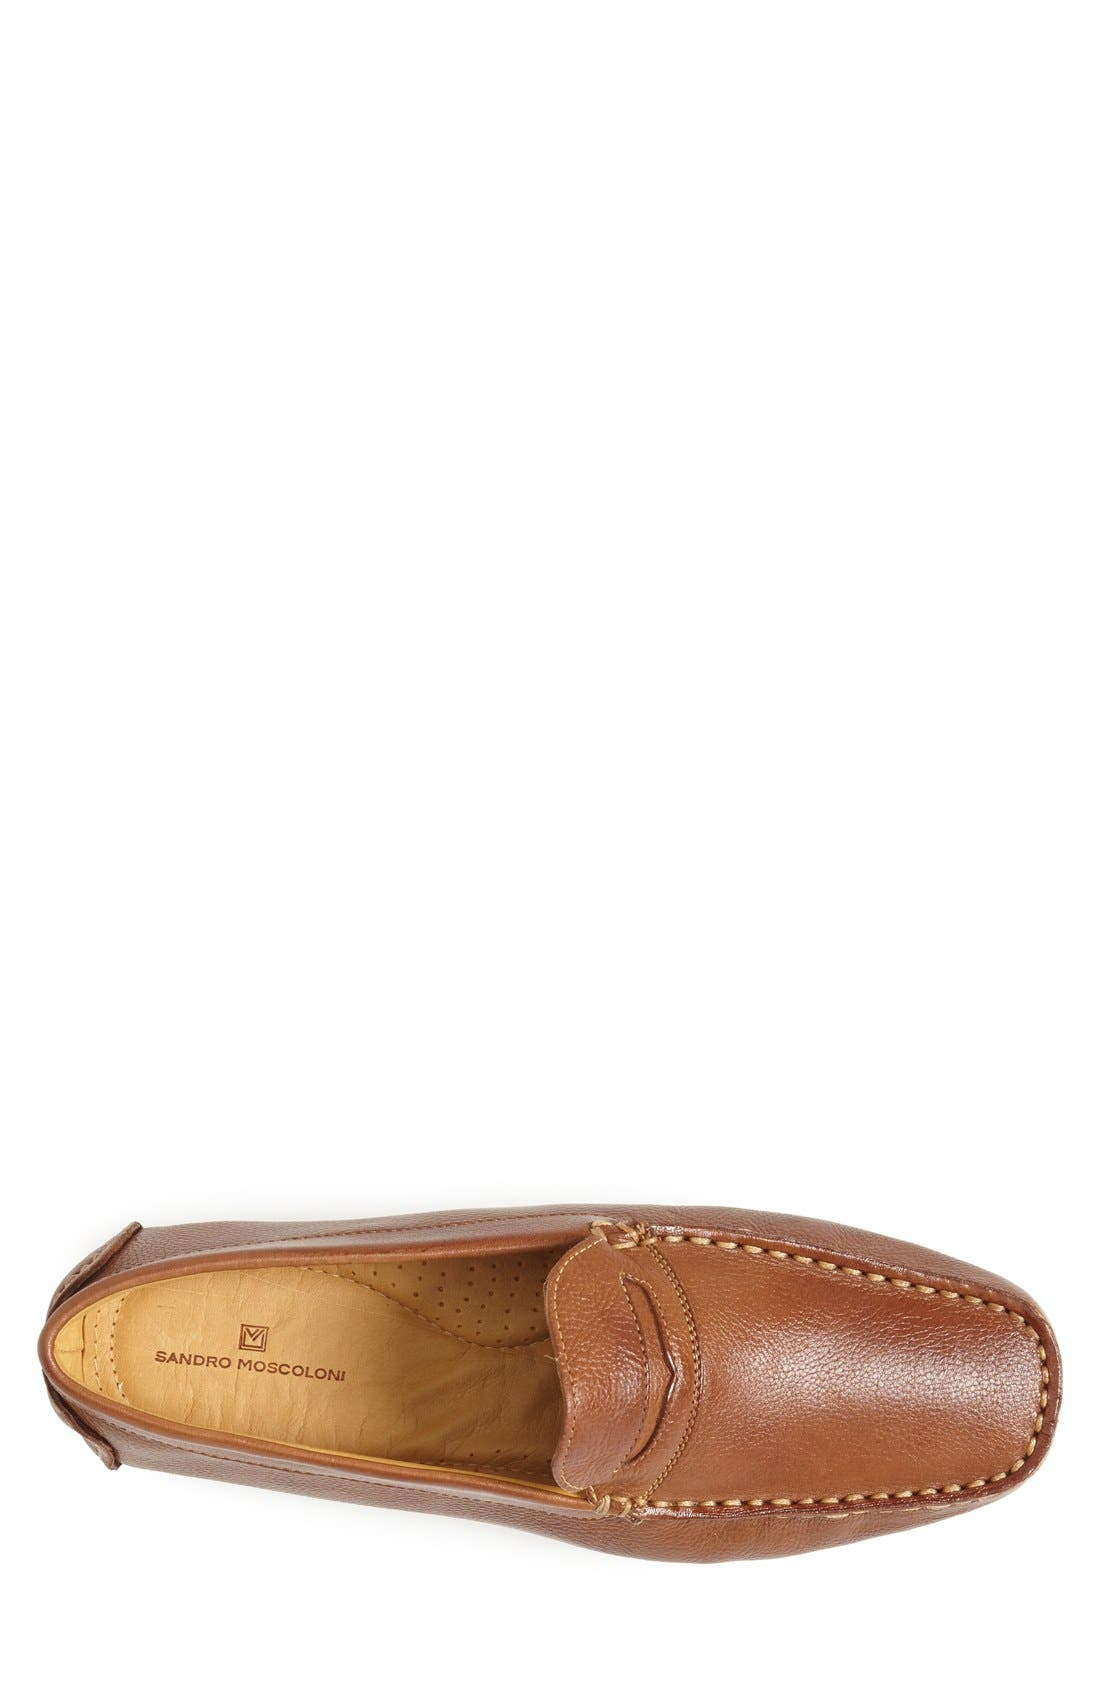 'Santee' Driving Shoe,                             Alternate thumbnail 4, color,                             COGNAC